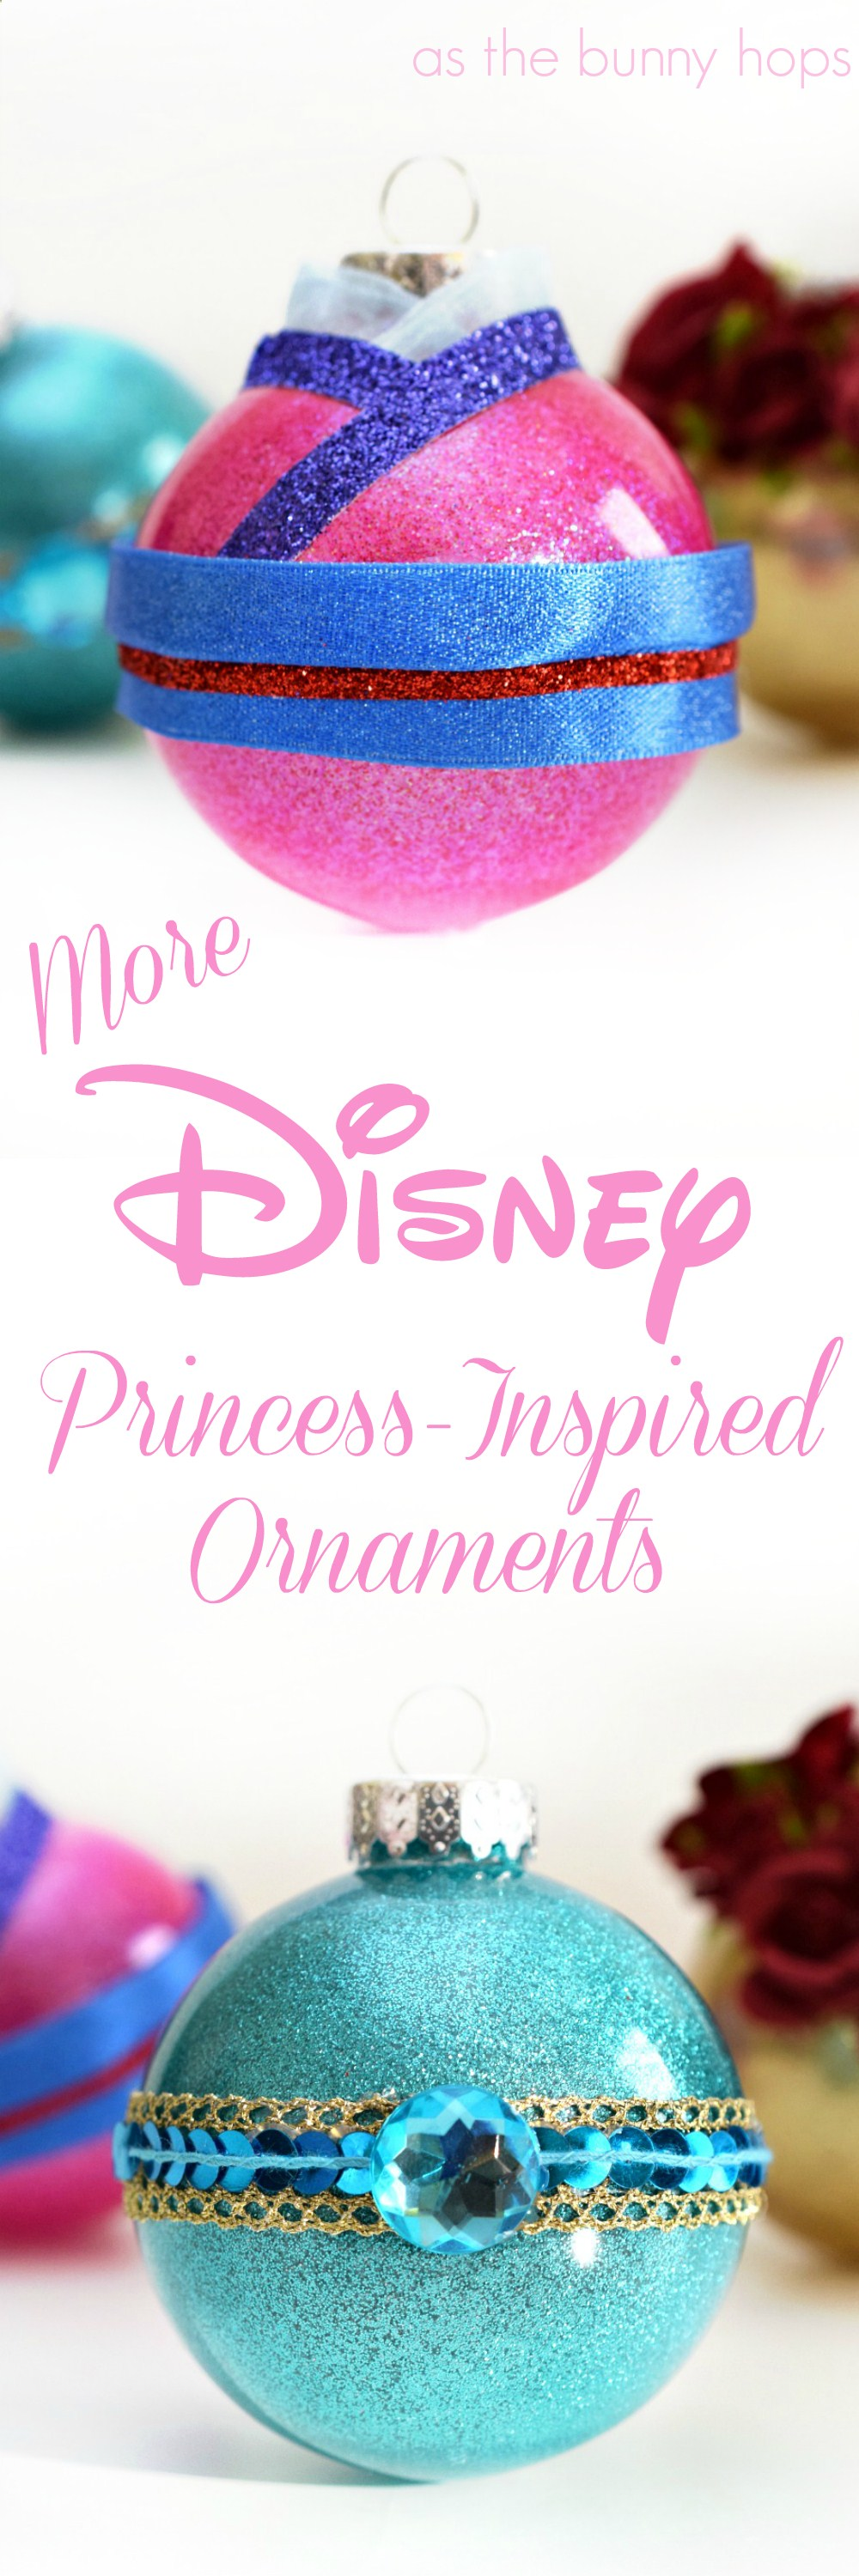 Make your own DIY Disney PrincessInspired Ornaments with